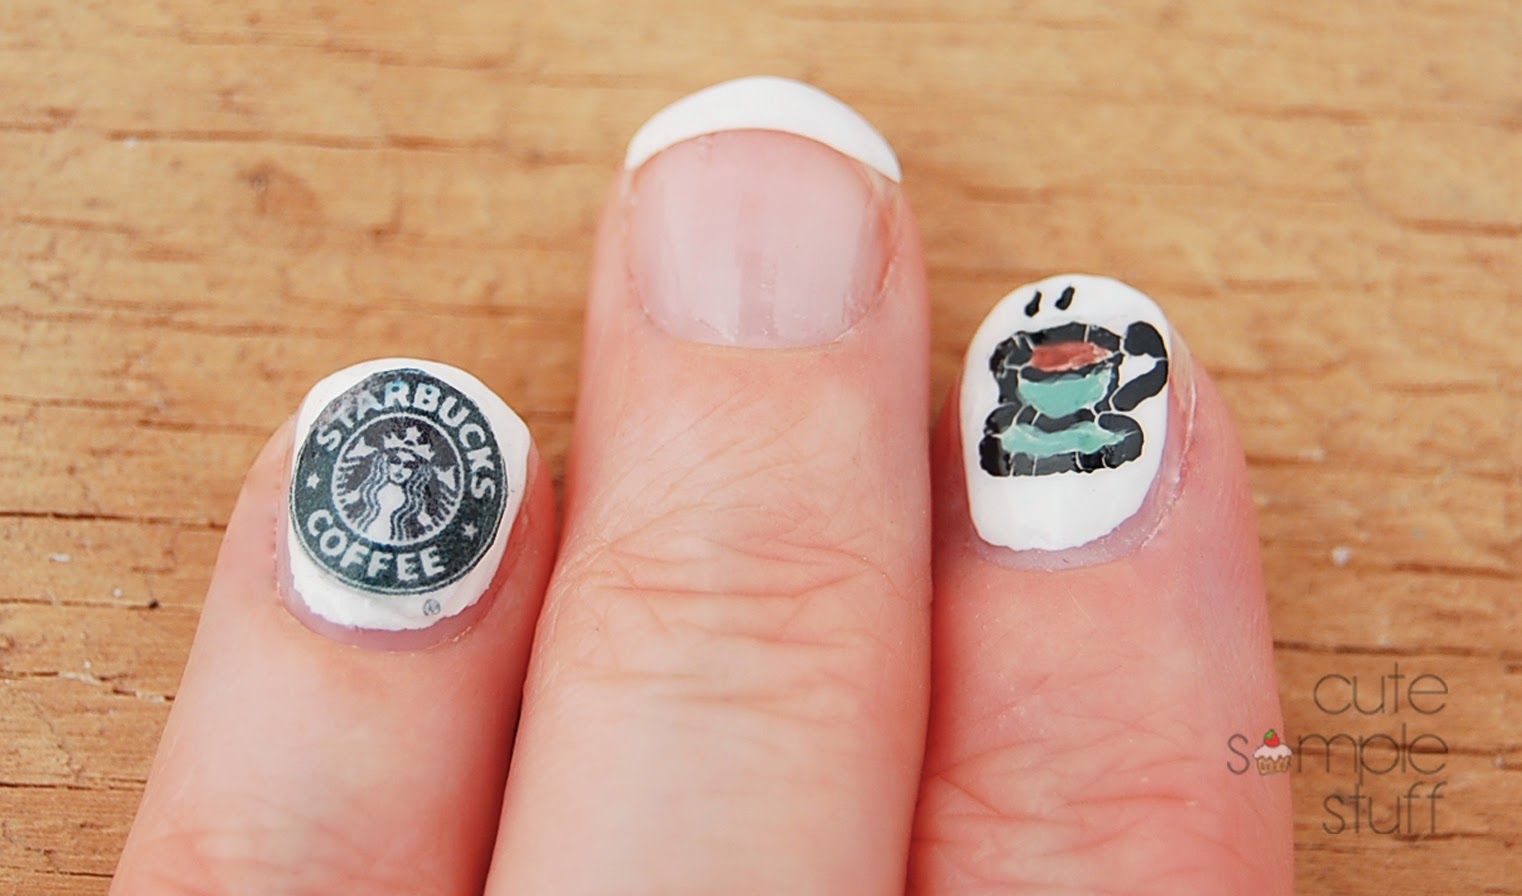 Coffee Art Nails Cute Simple Stuff Monday Mani Starbucks Coffee Inspired